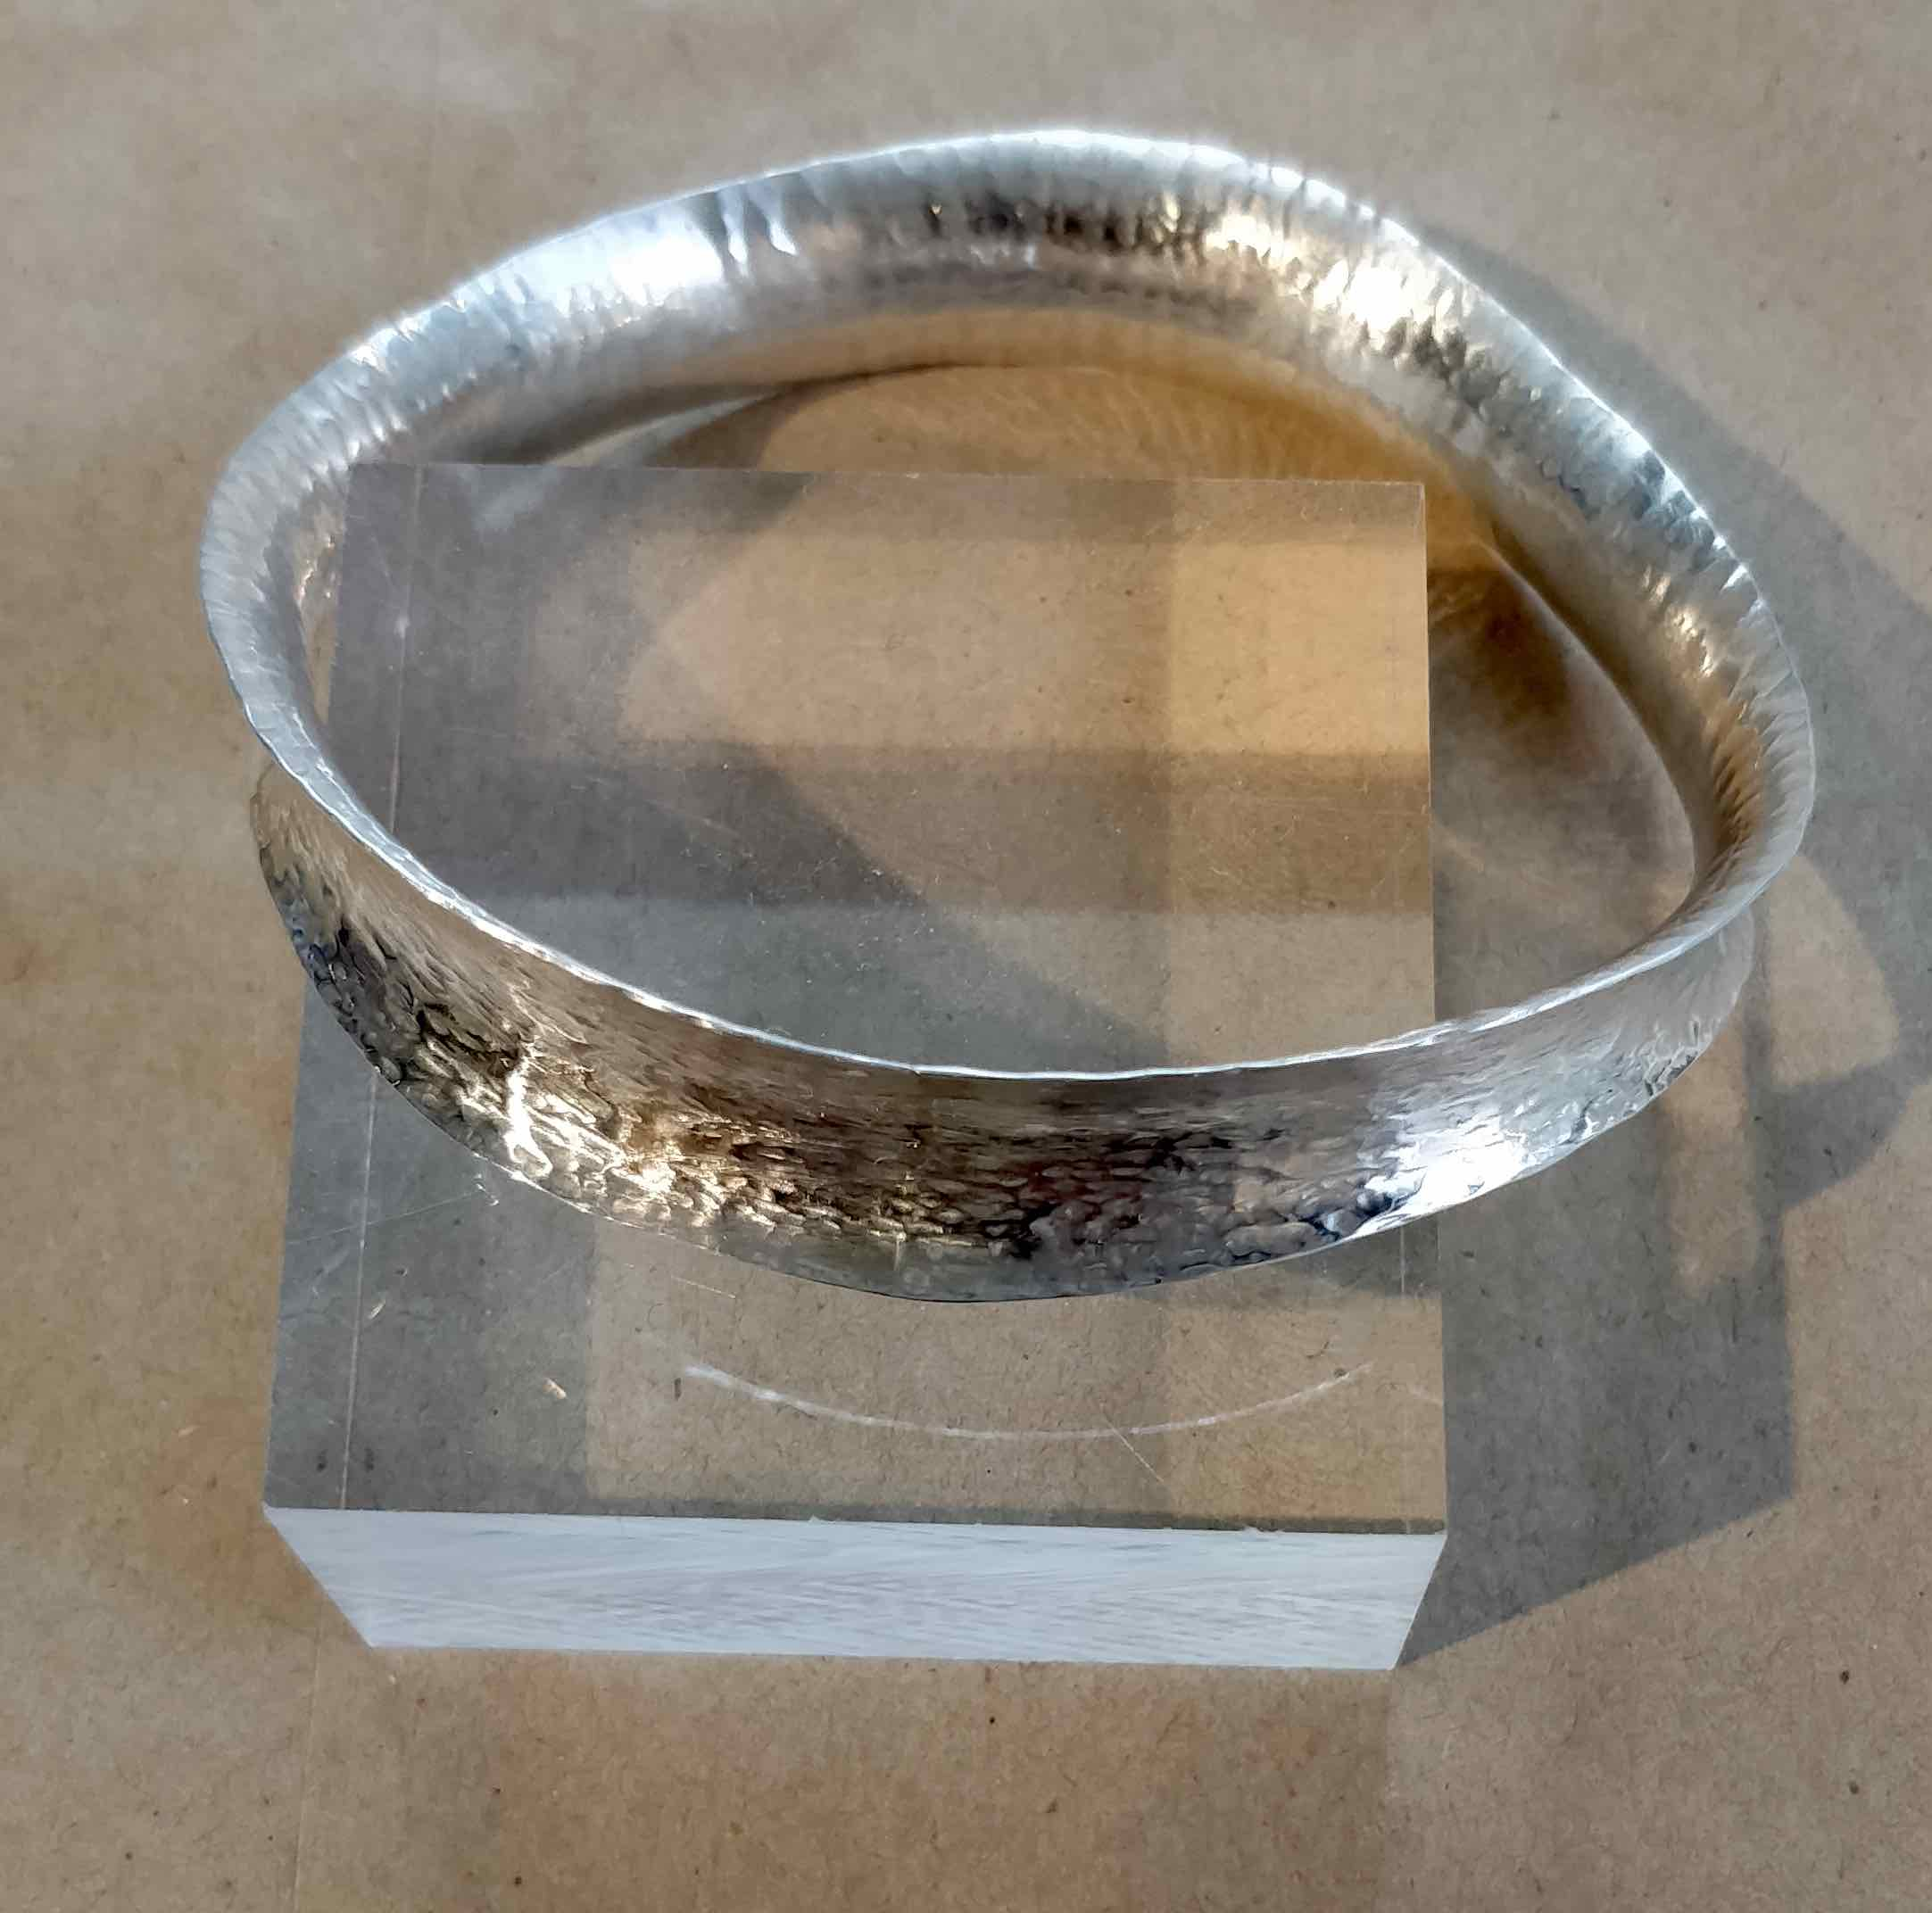 "<span class=""link fancybox-details-link""><a href=""/artists/148-roberta-hopkins/works/5705-roberta-hopkins-wave-bangle-2018/"">View Detail Page</a></span><div class=""artist""><strong>Roberta Hopkins</strong></div> <div class=""title""><em>Wave Bangle</em>, 2018</div> <div class=""medium"">sterling silver</div><div class=""copyright_line"">£ 13.50 x 10 Months, OwnArt 0% APR</div>"